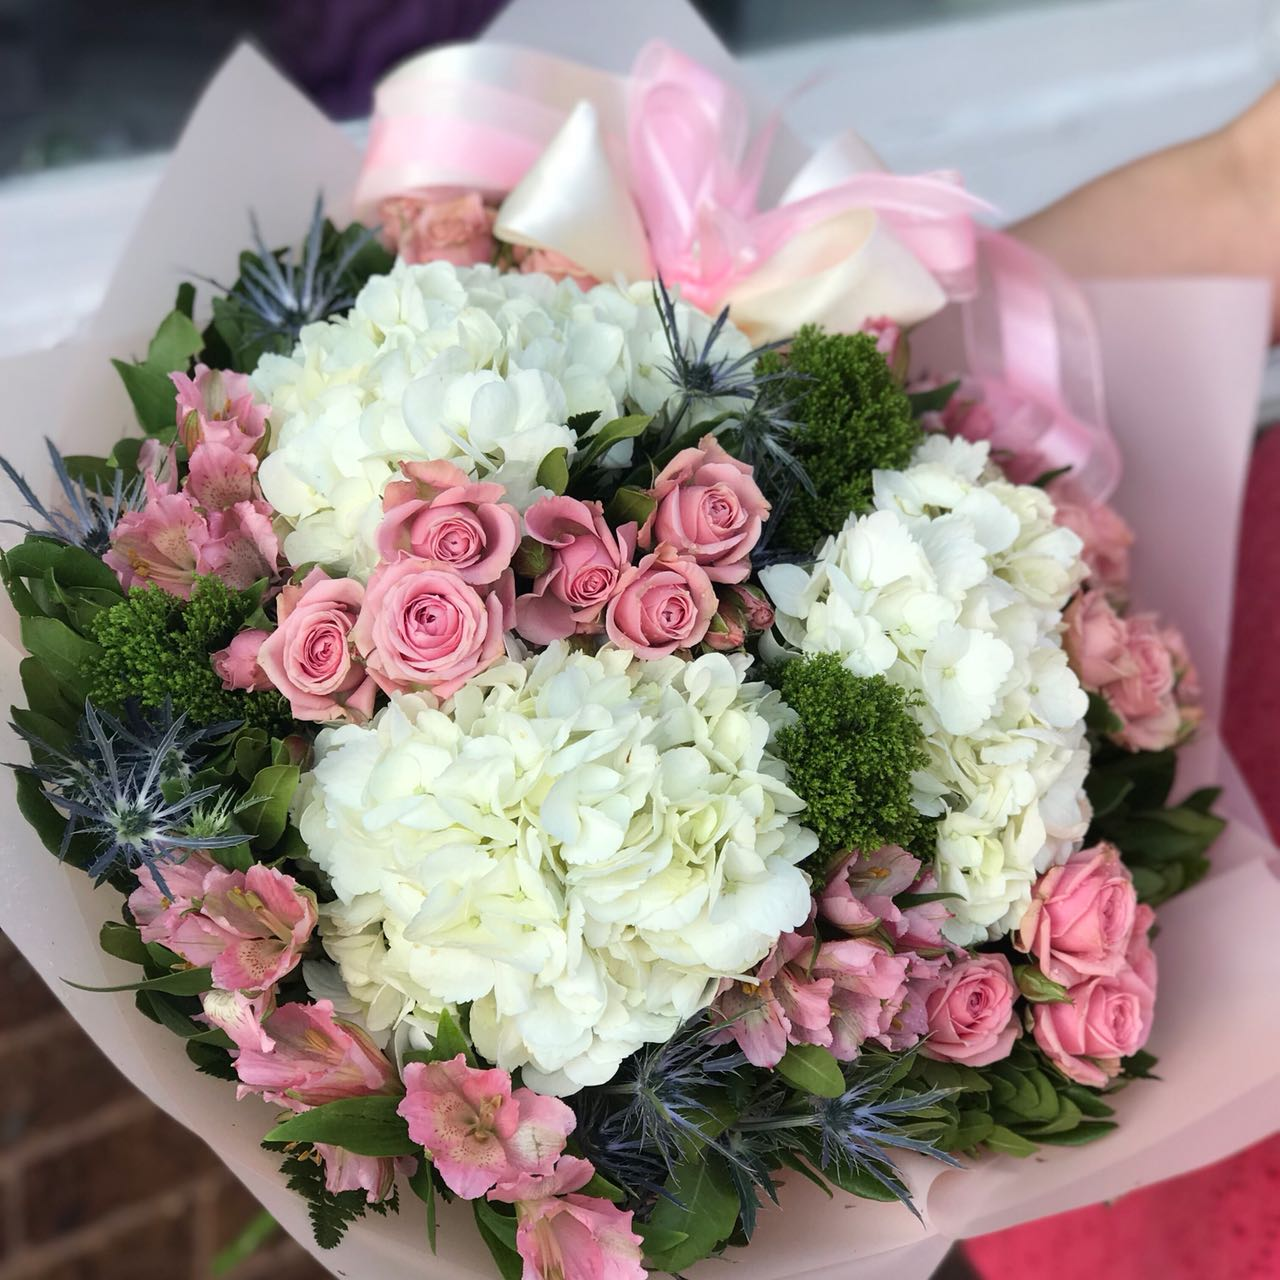 Would you walk a mile for one of her smiles? You can bet she'll be walking toward you, arms outstretched, when she receives this gorgeous. And wait till you see the smile she gives you.  Includes:  White hydrangea, pink mini roses, pink alstroemeria, eringium, assorted greens. Free message card